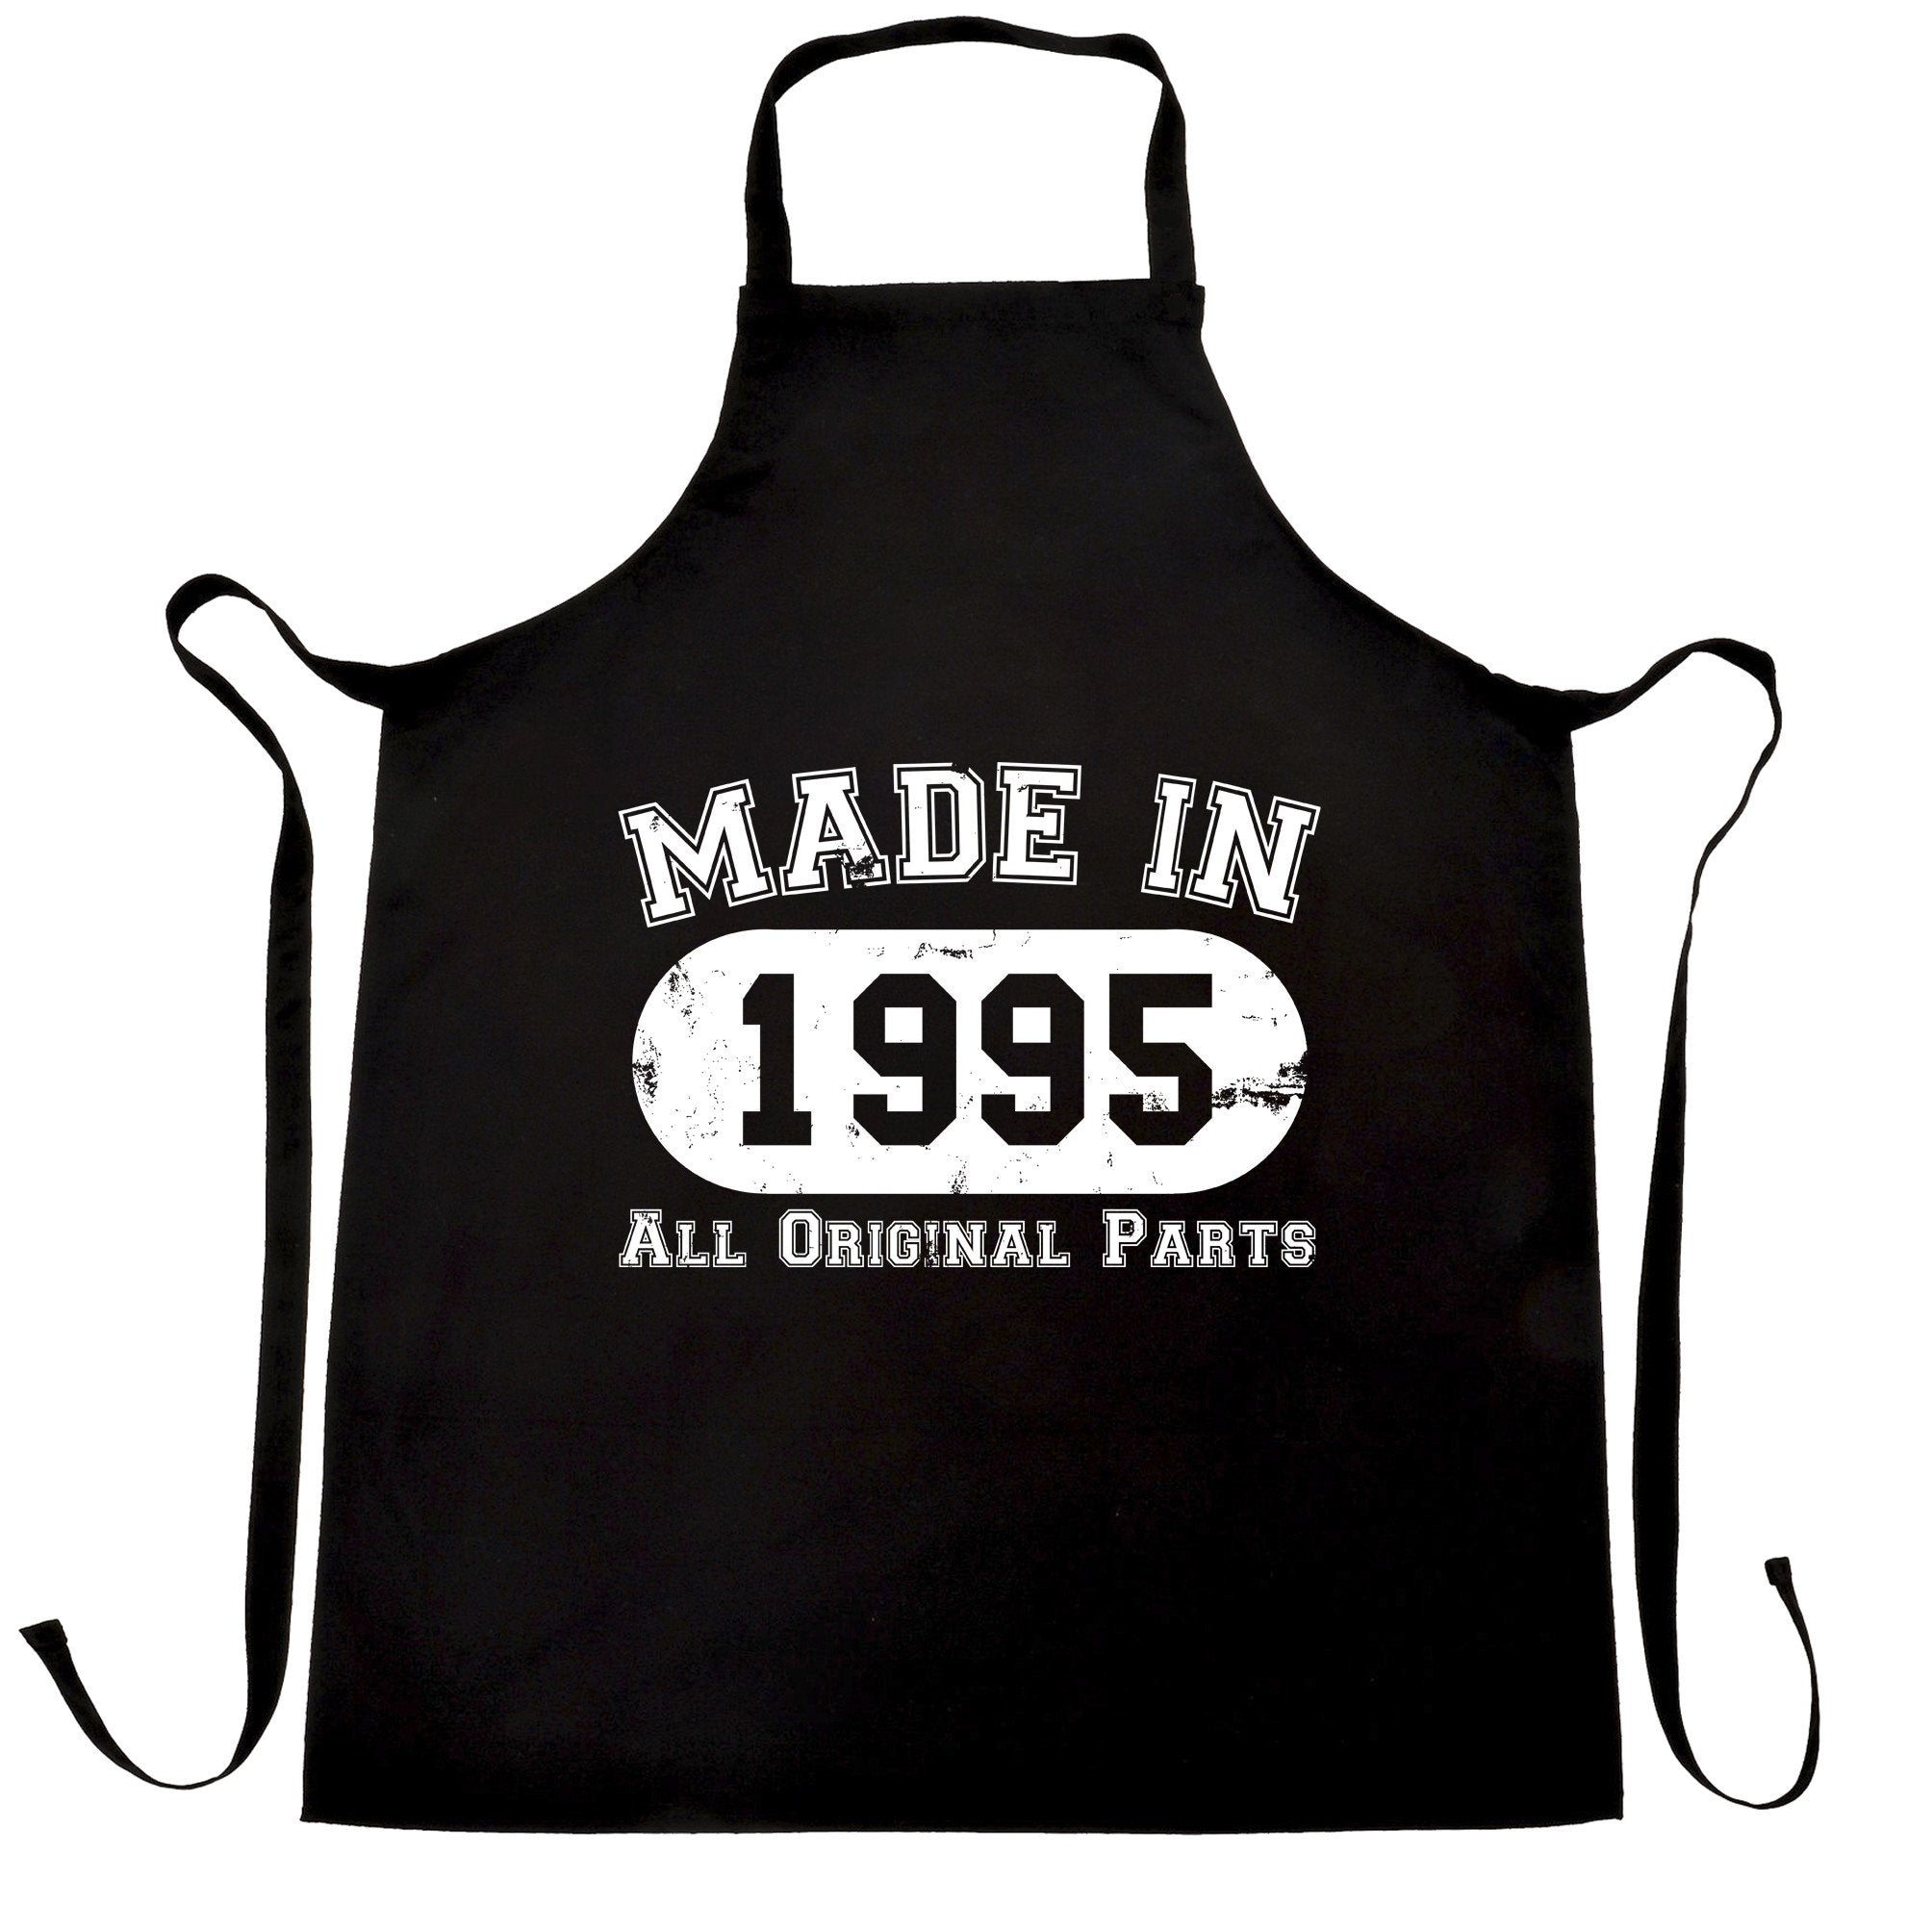 Made in 1995 All Original Parts Apron [Distressed]